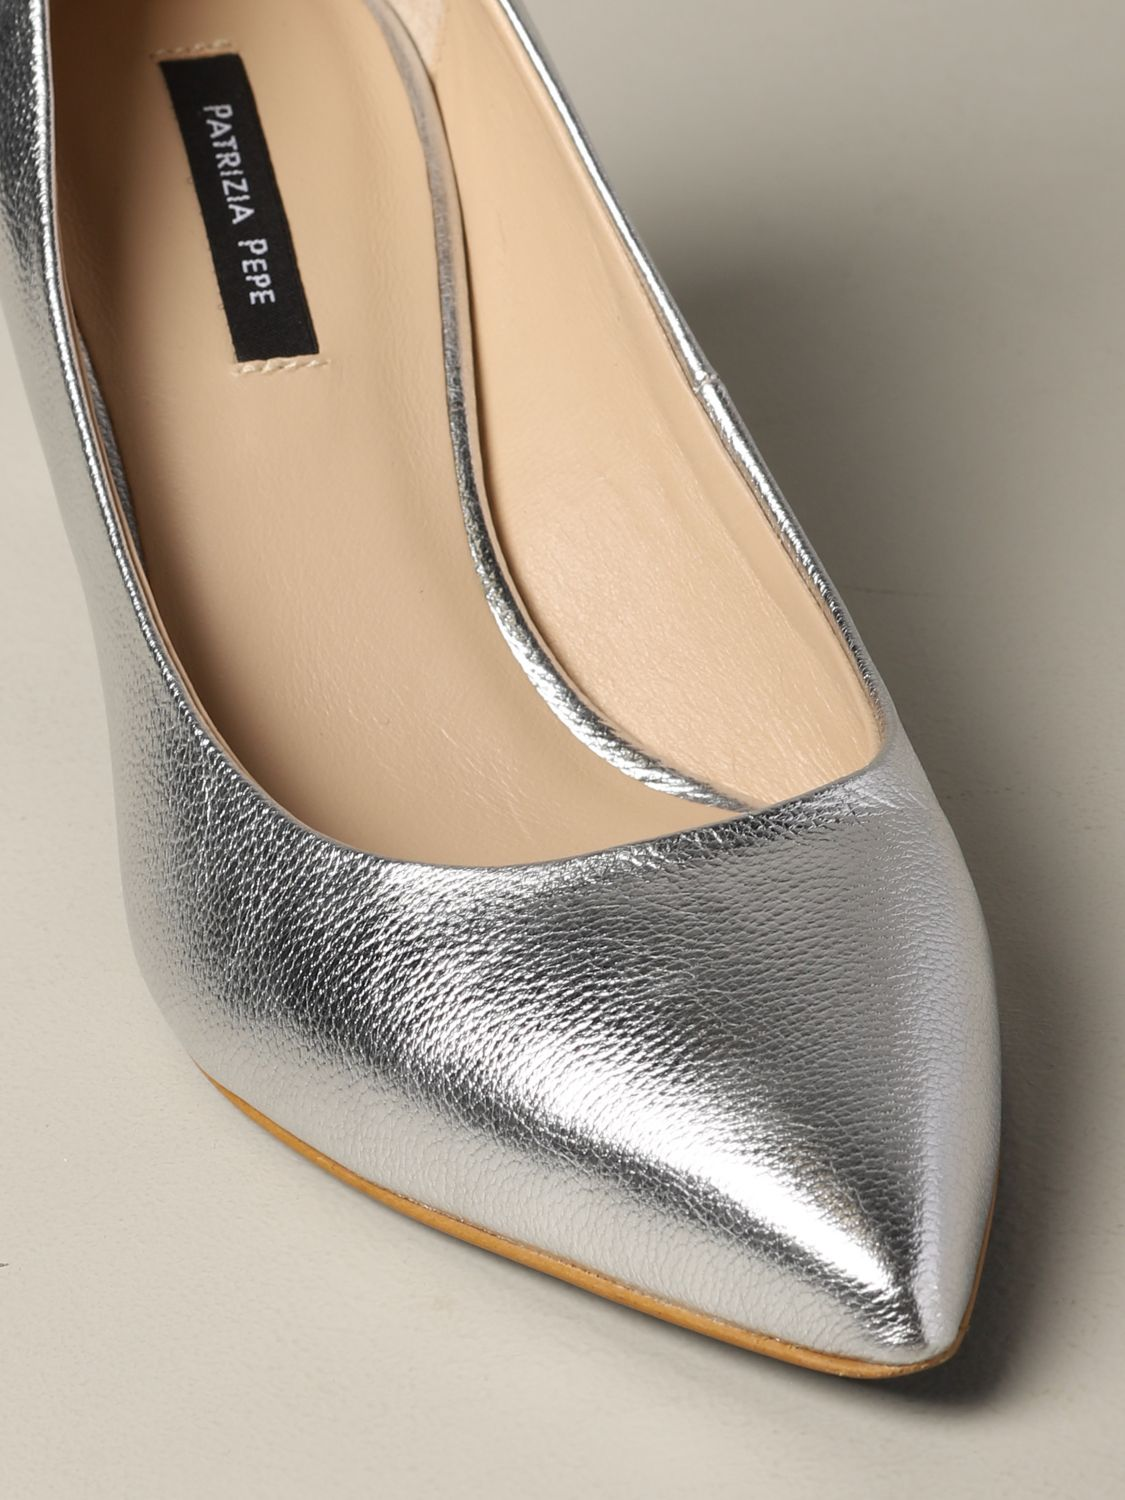 Patrizia Pepe pumps in laminated leather silver 4